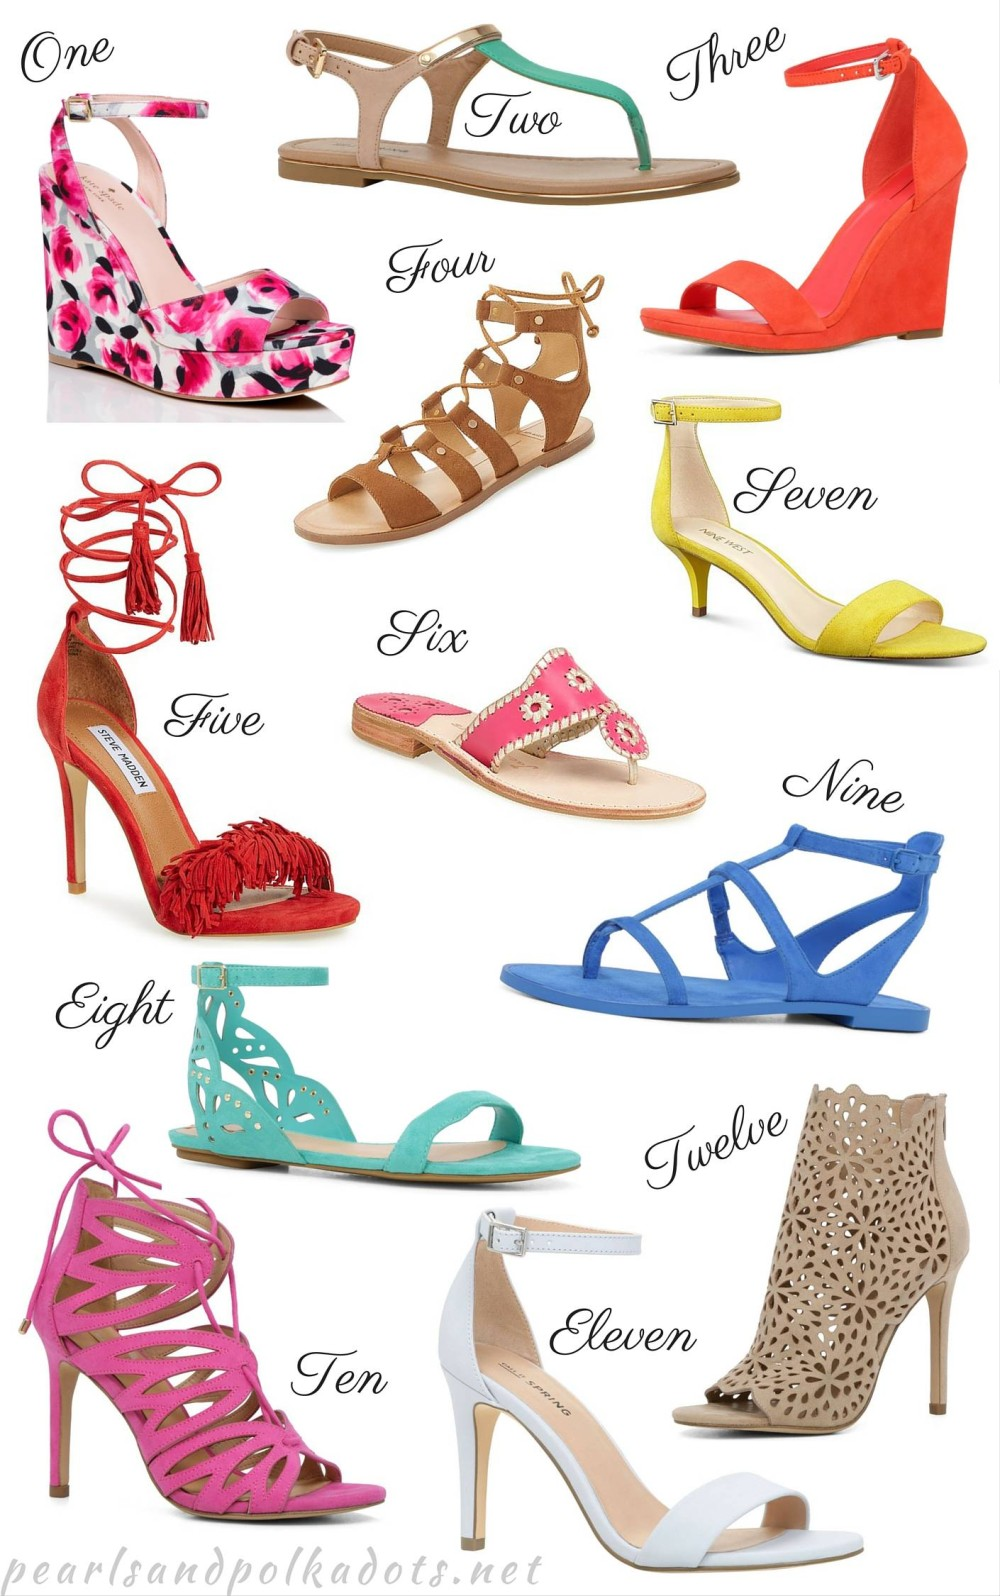 12 Pairs of Springy Shoes You Need this Season!